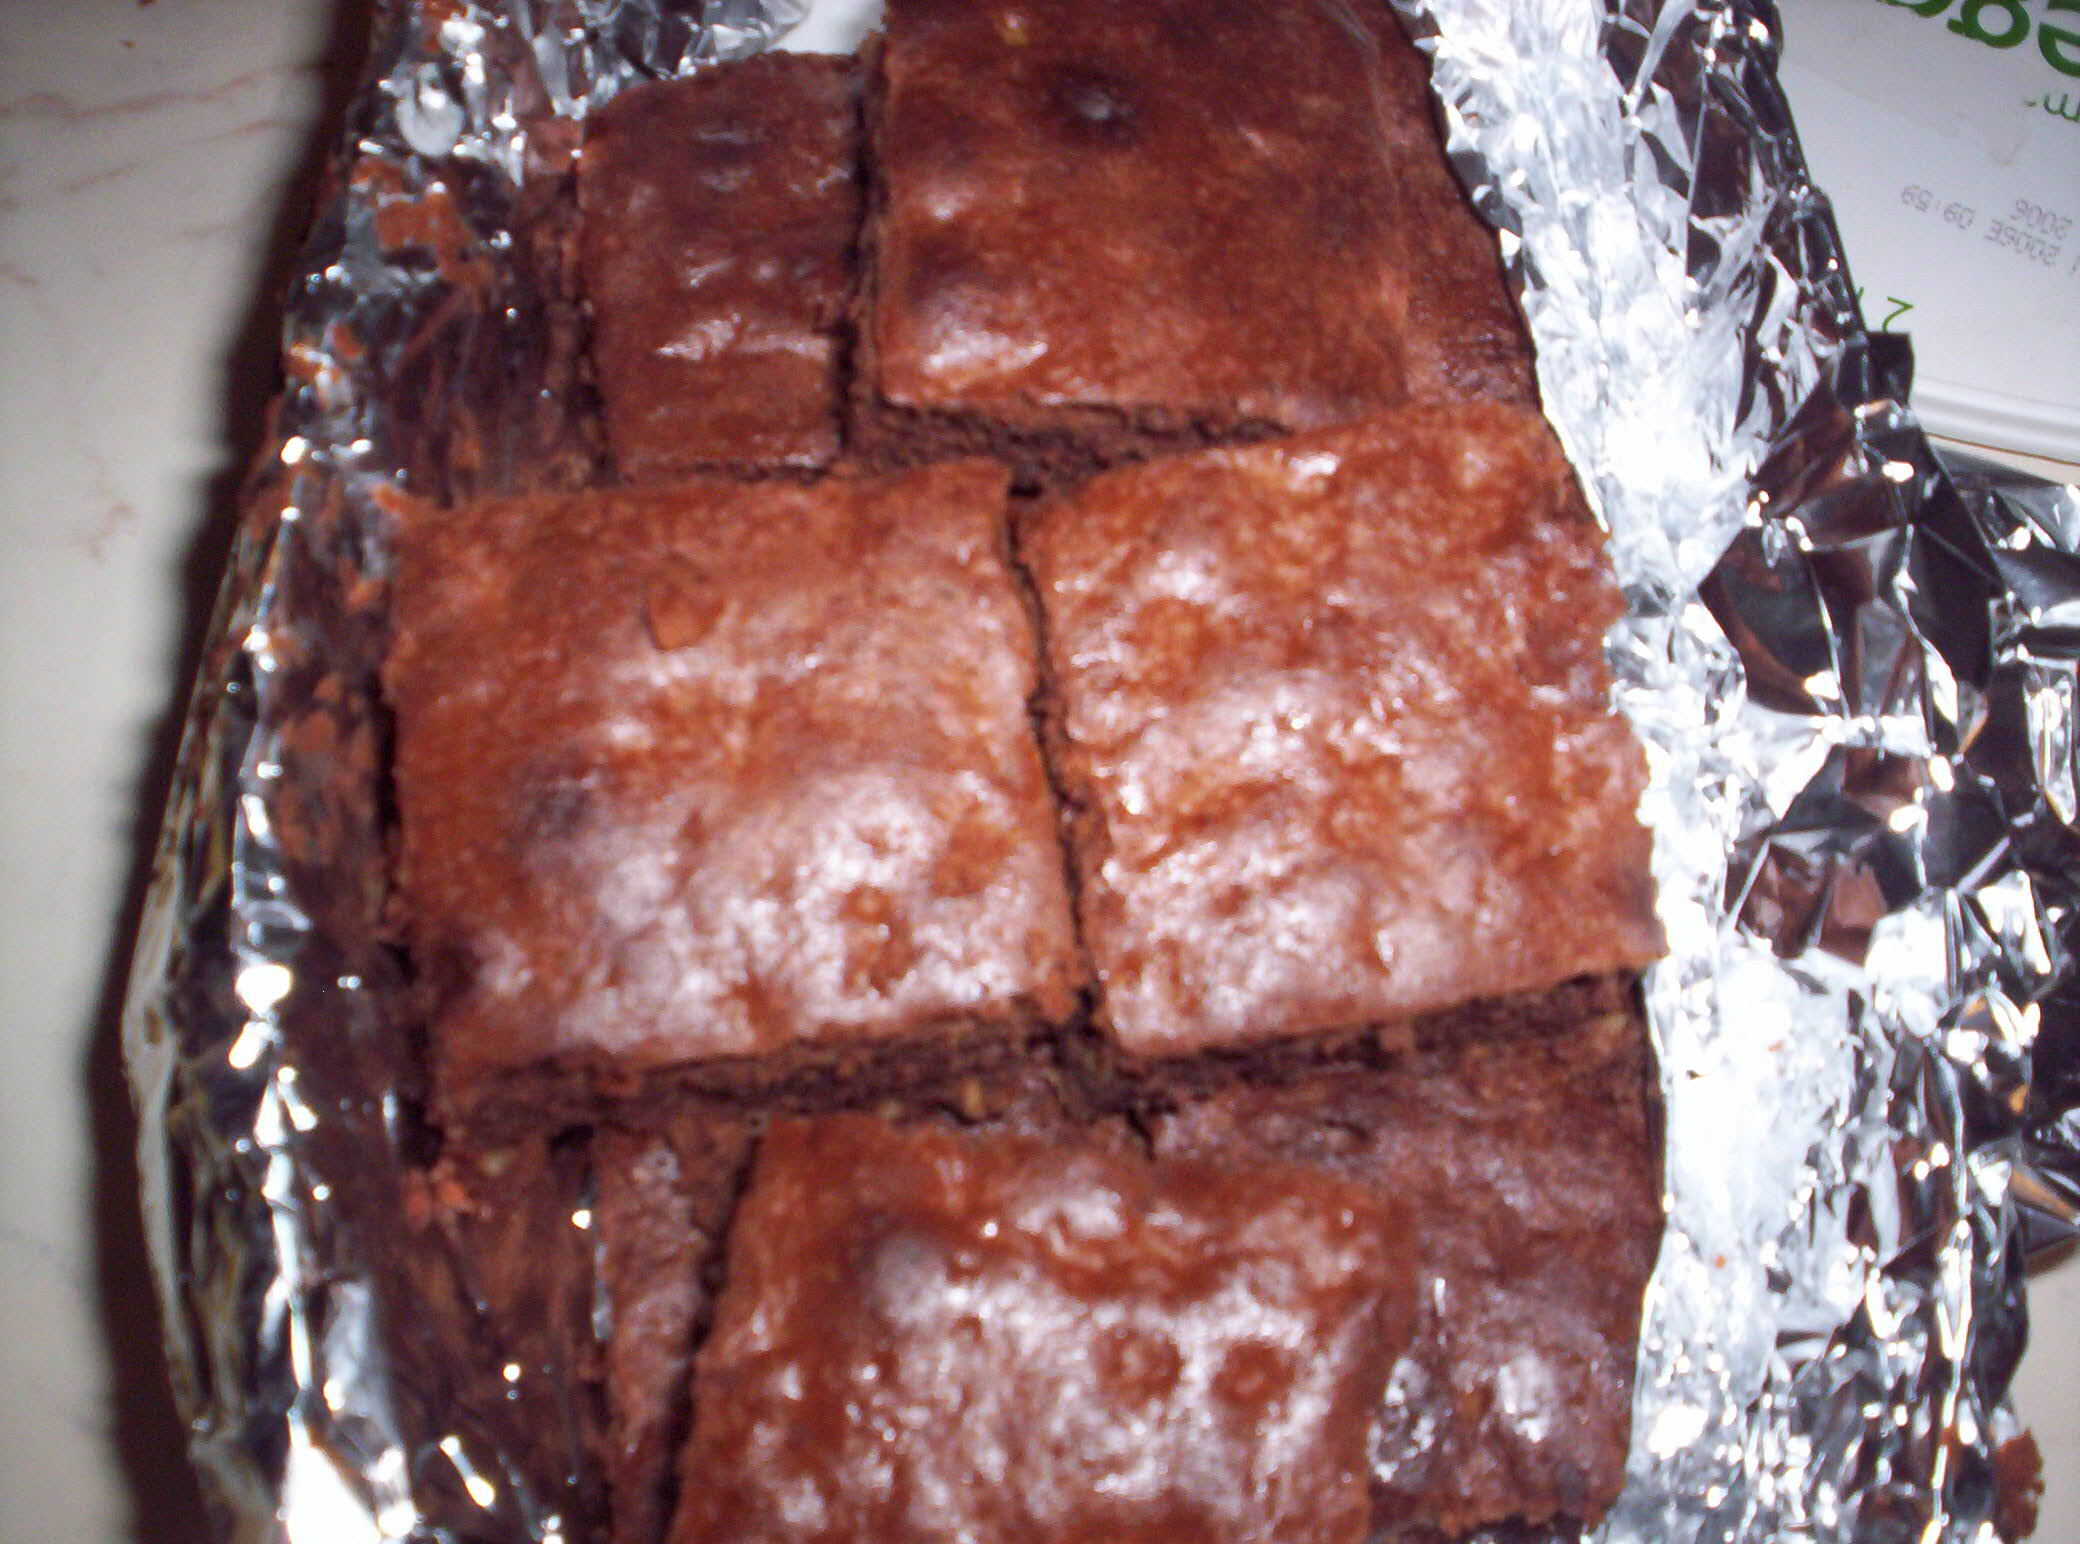 Nallemammas brownies